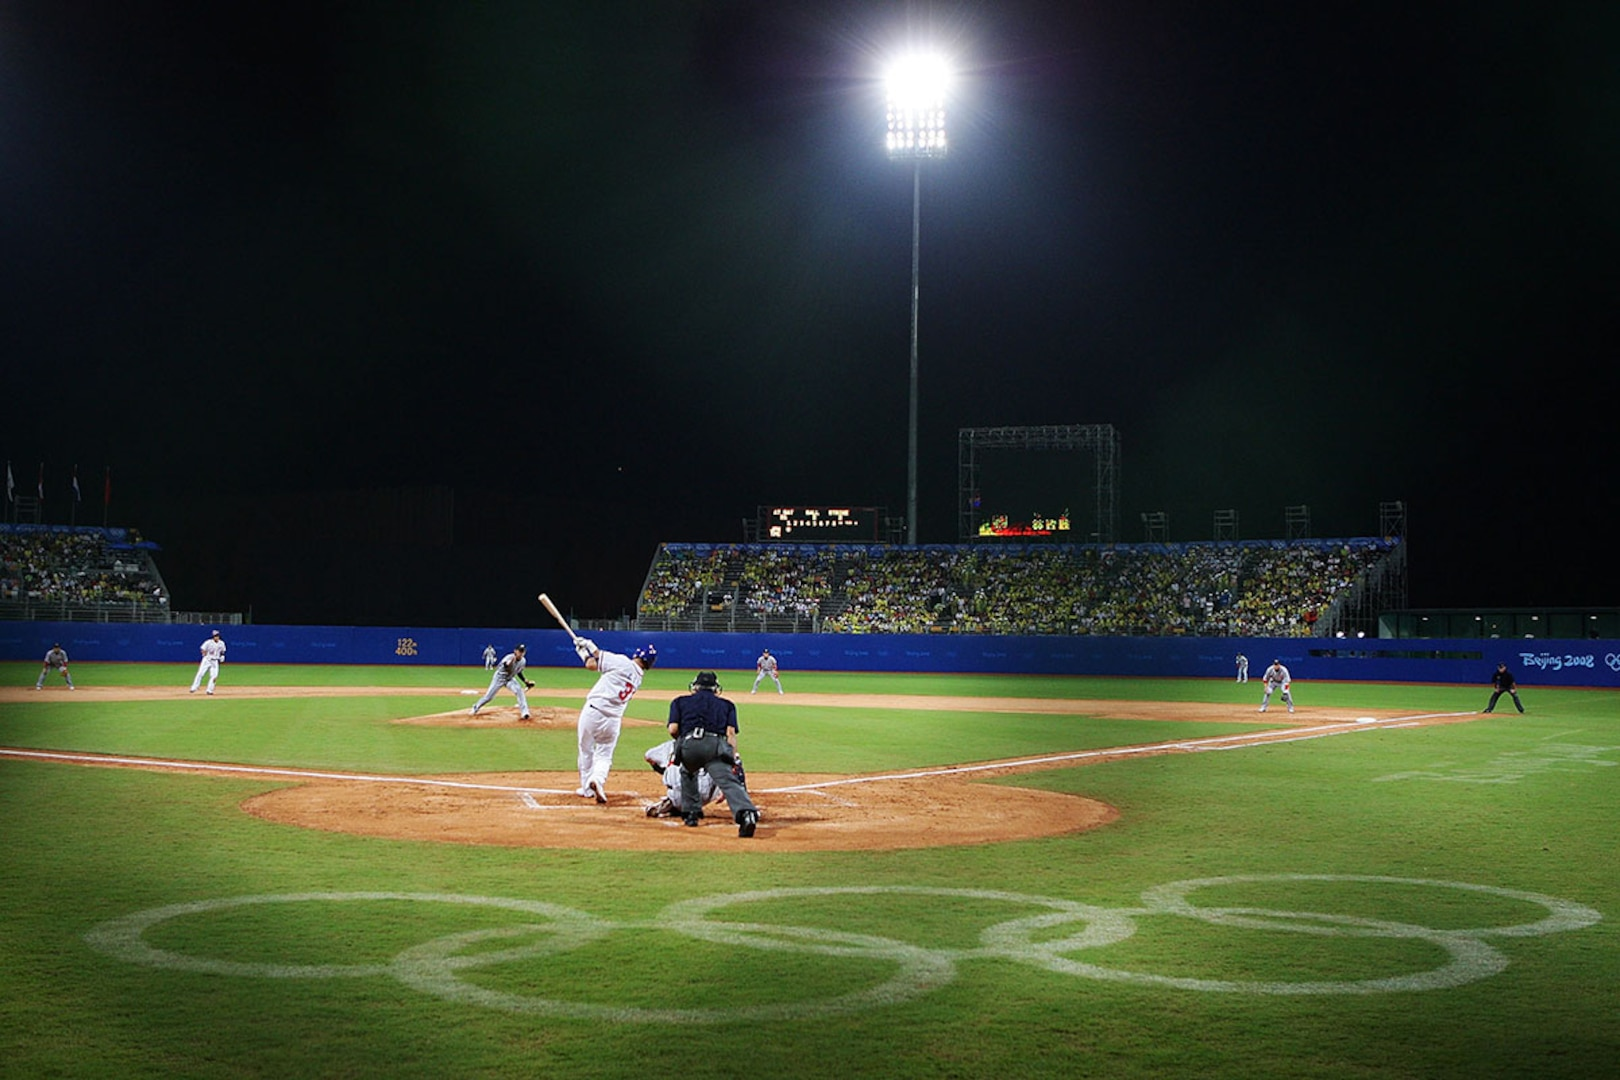 A baseball game played at night during the 2008 Beijing Olympics